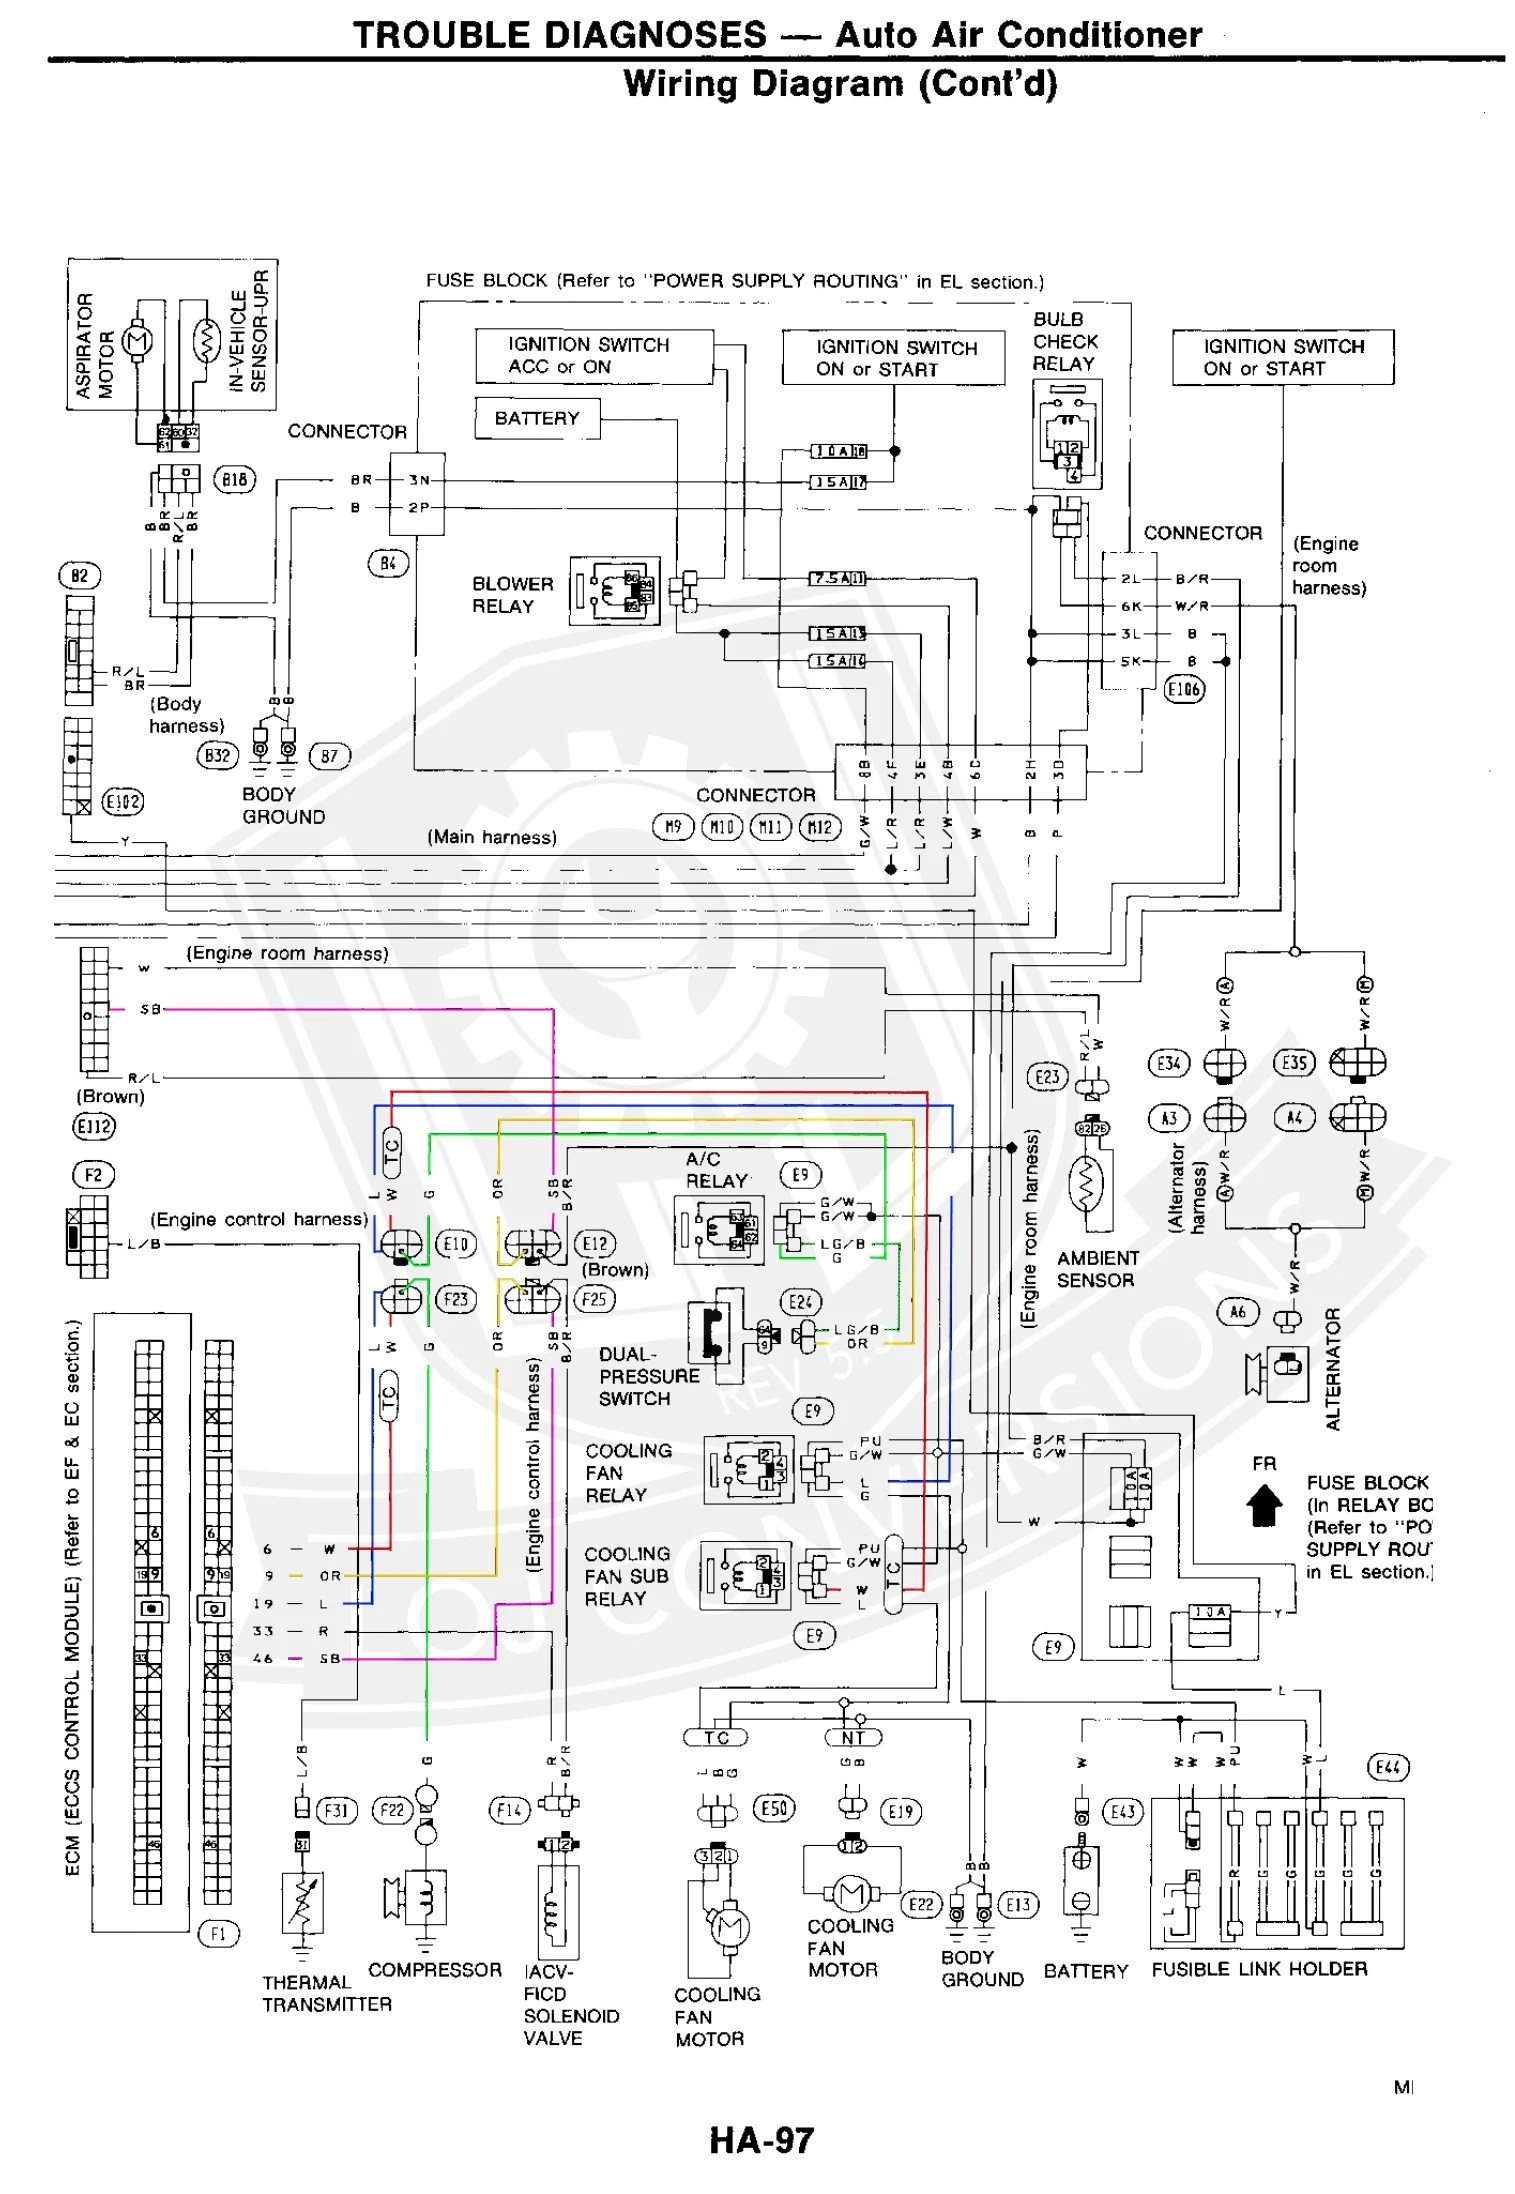 medium resolution of 1977 280z fuse box wiring diagram centre280z engine diagrams wiring diagram1977 280z fuse box wiring diagram1977